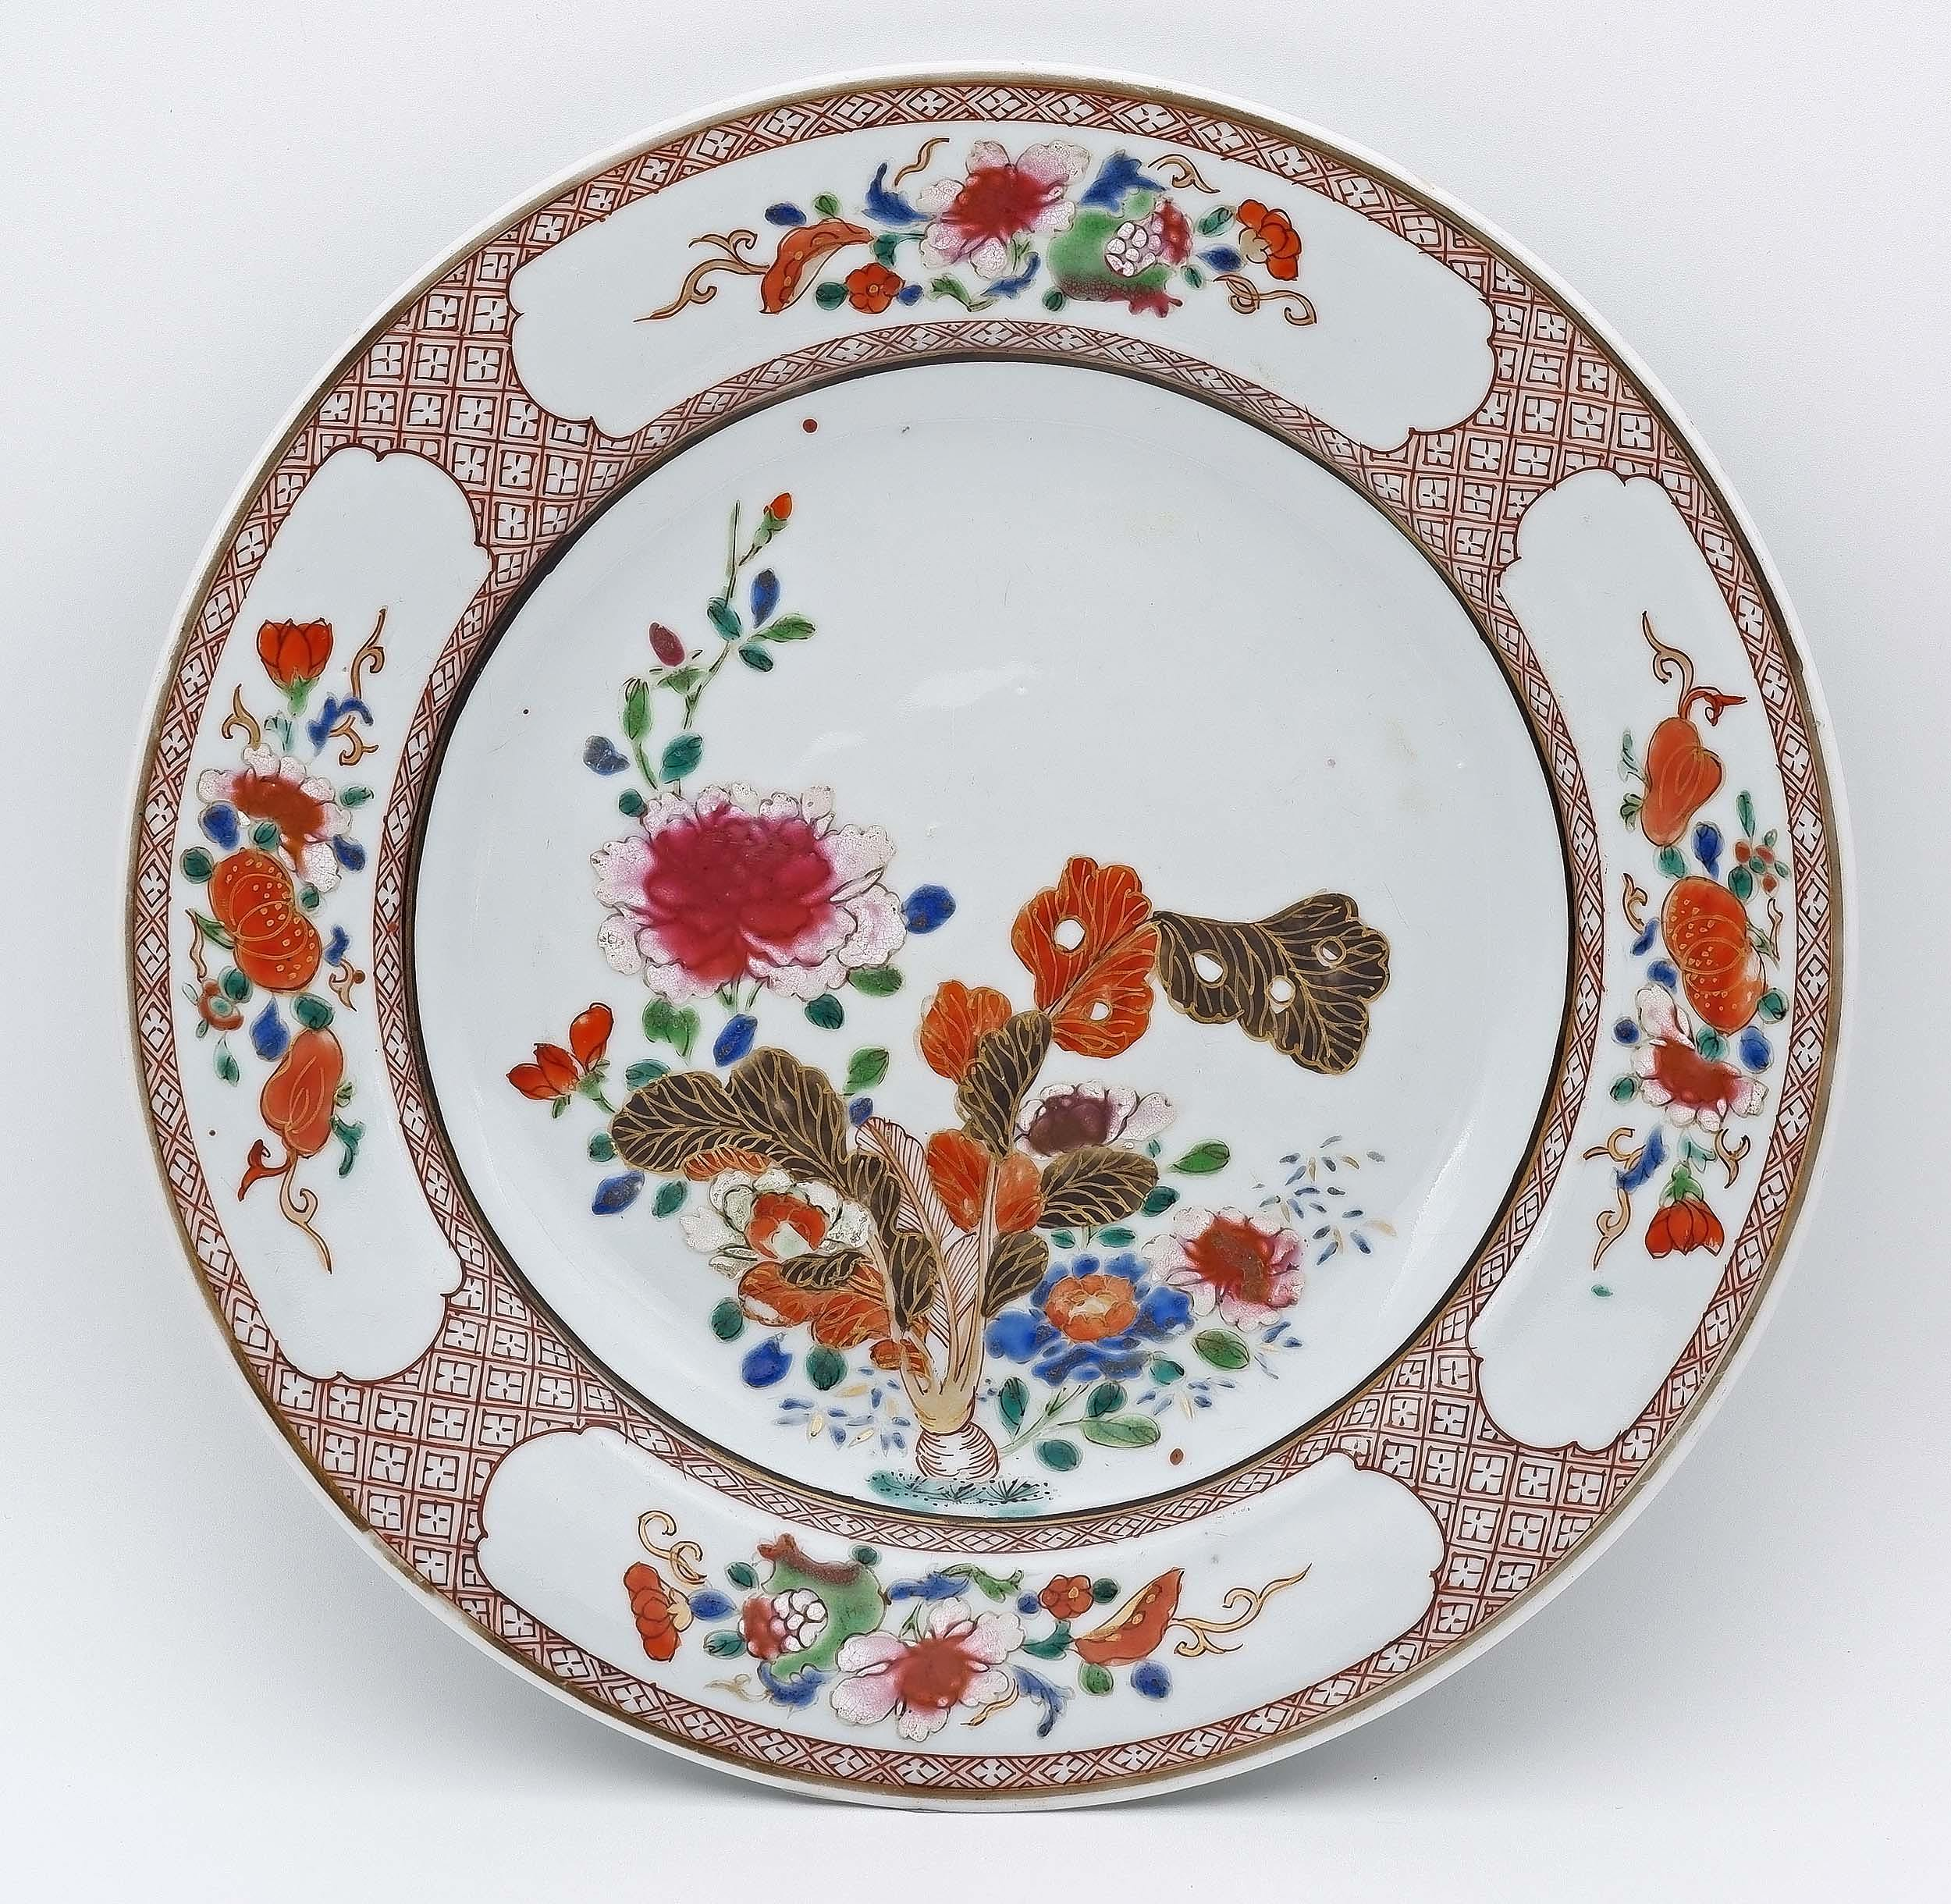 'Chinese Export Famille Rose Plate, Late 18th Century'